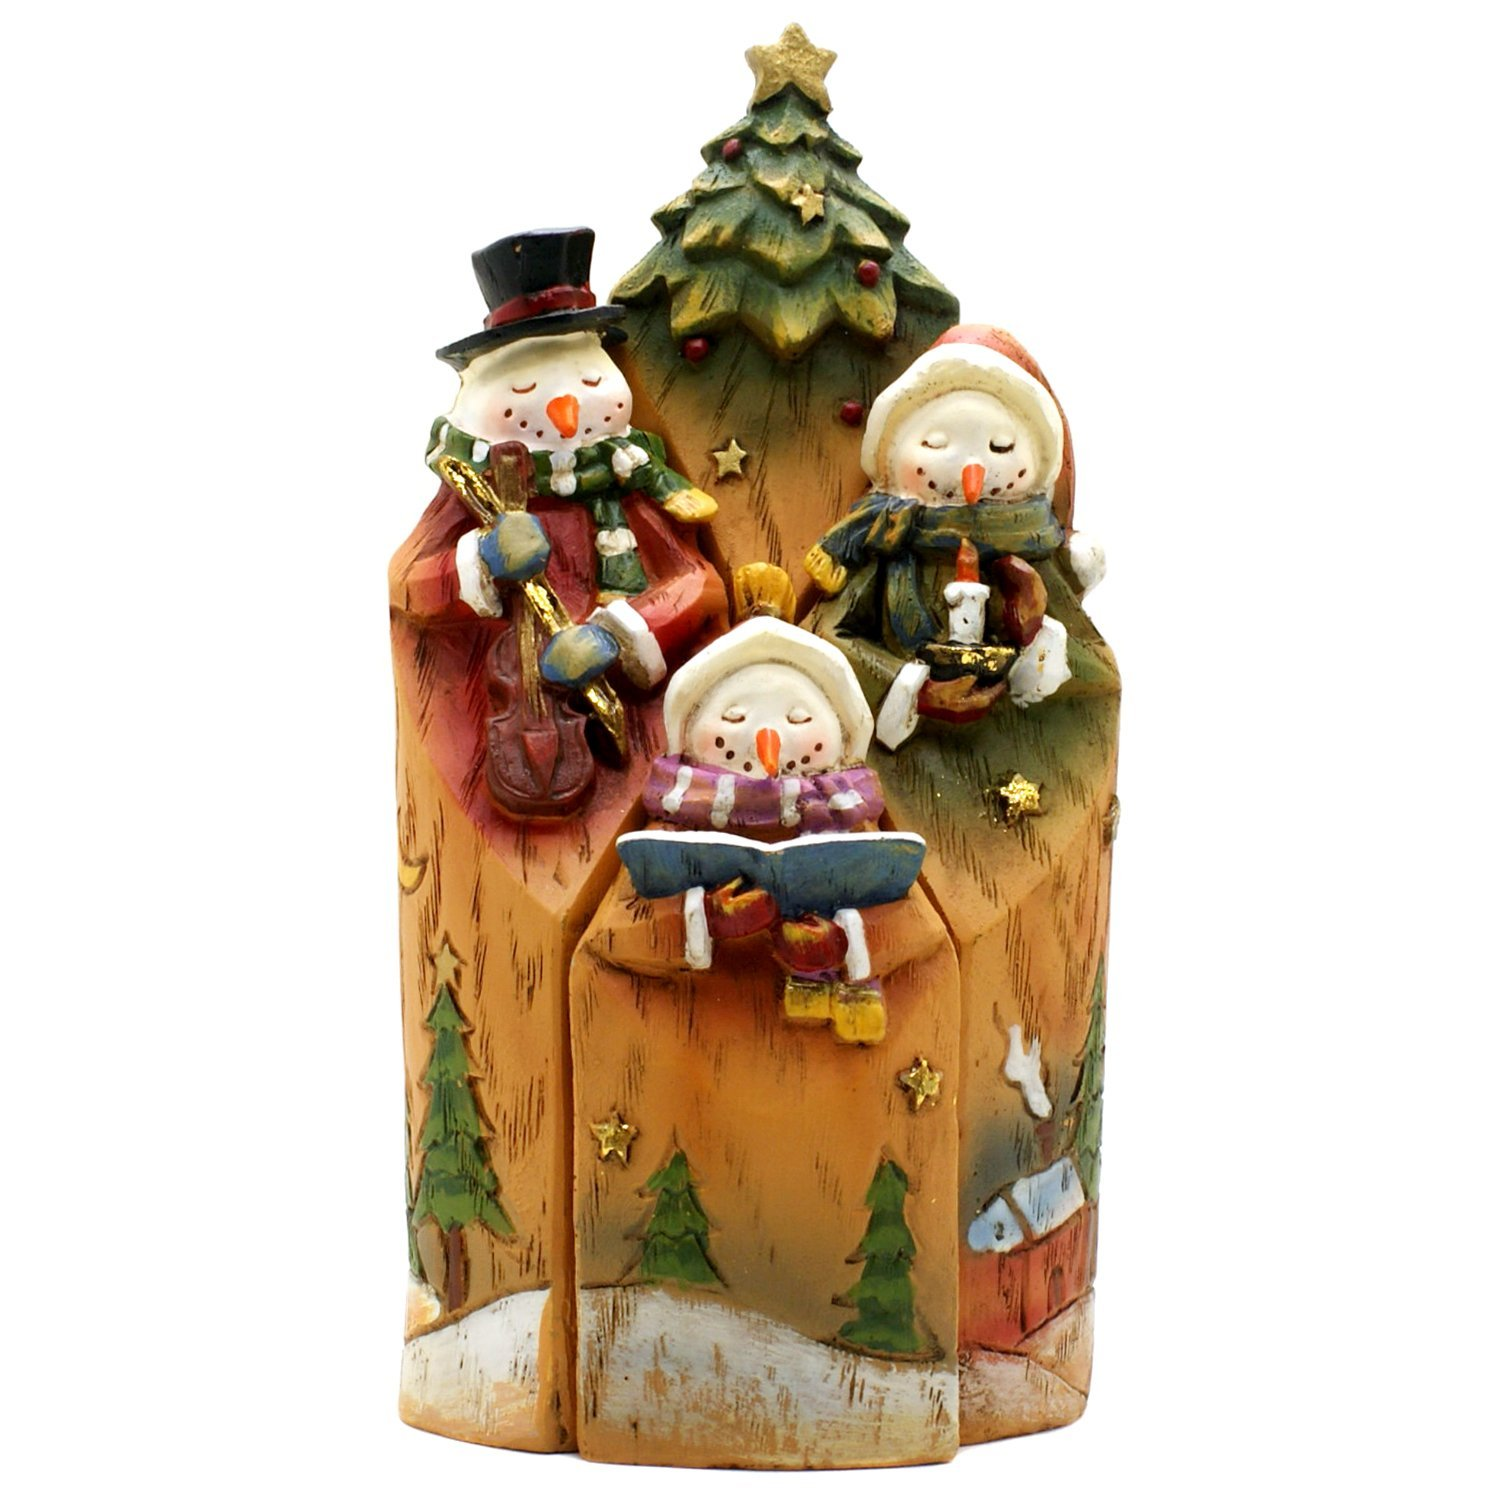 Roman Christmas Snowman Family Nesting Figurines: Set Of 4 Wood-Carving Styled Figurines